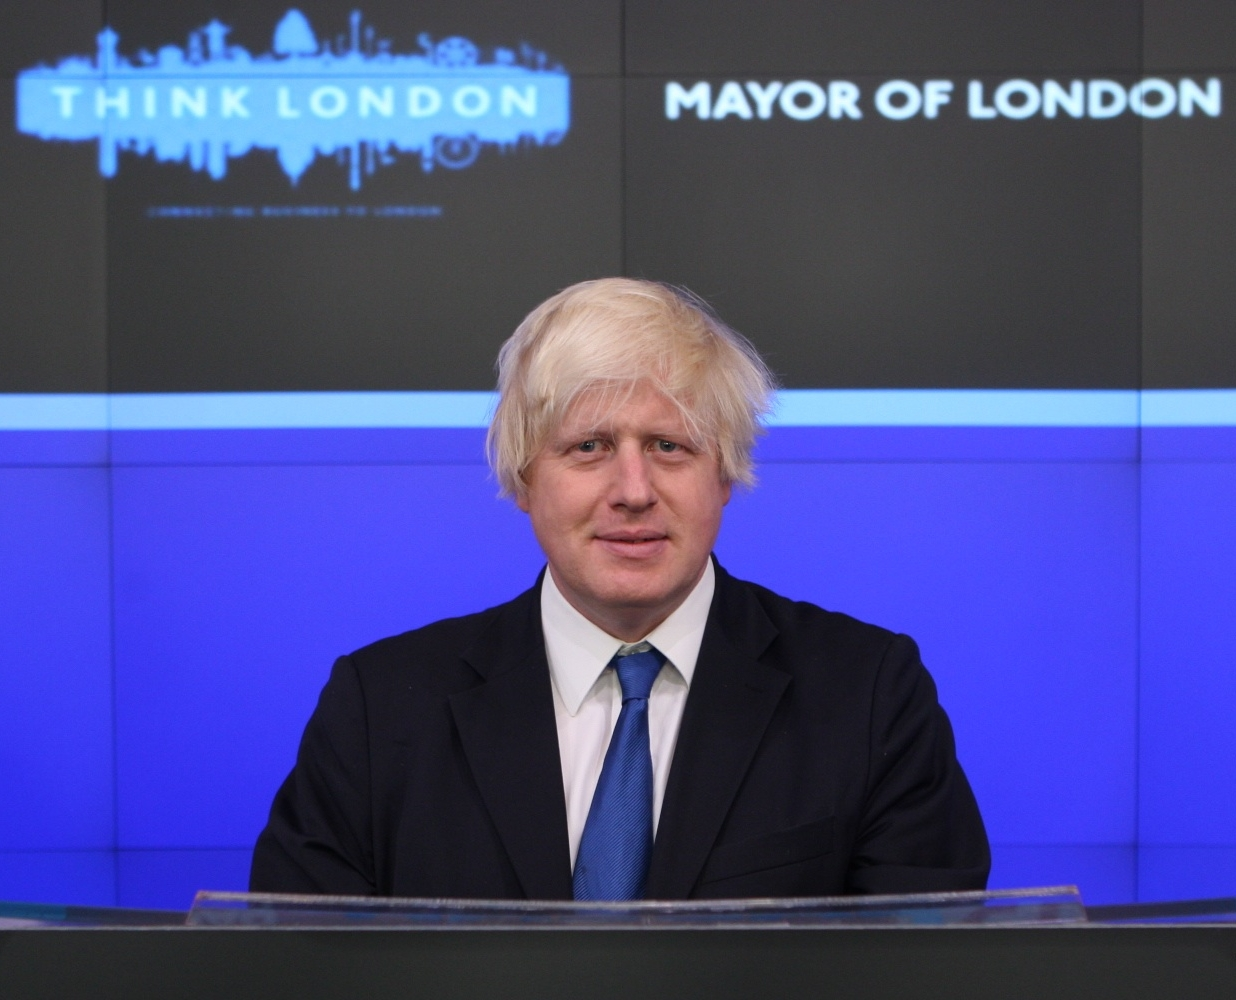 Boris Johnson could refuse to recall parliament even if the Supreme Court rules that his decision to suspend it was unlawful, the government has said.